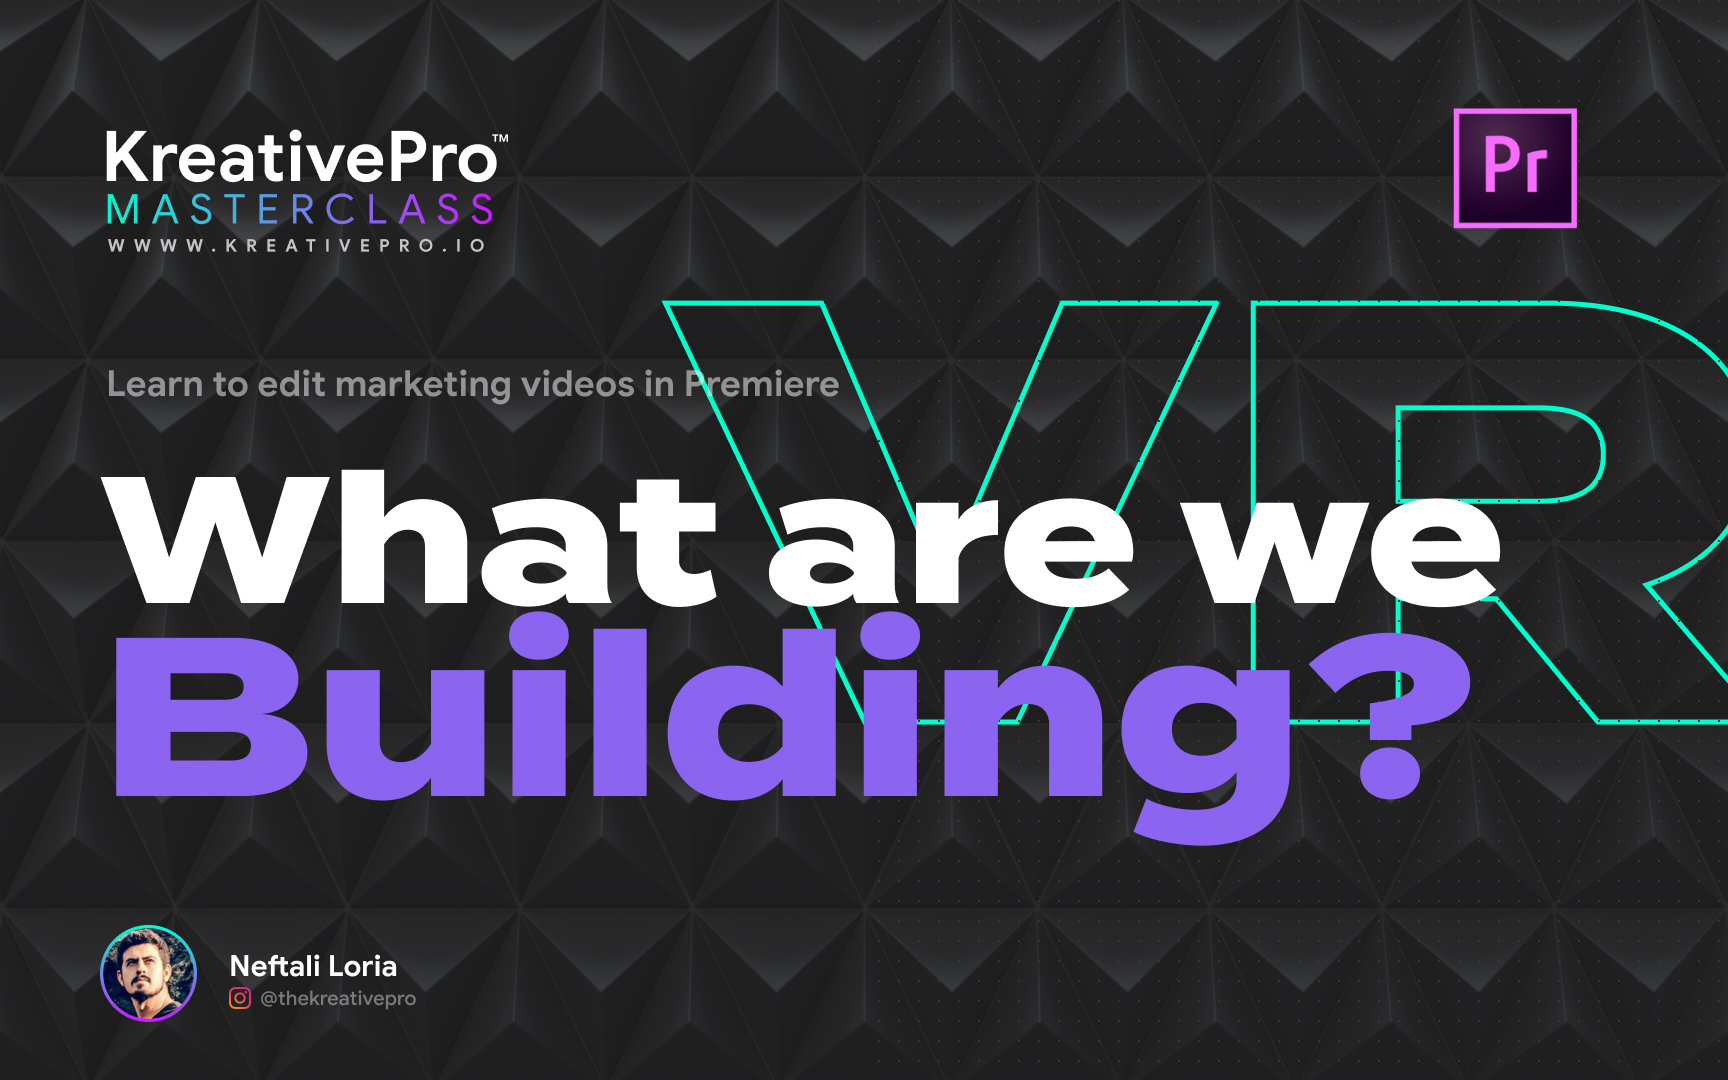 Adobe Premiere 1.1 - What are we building